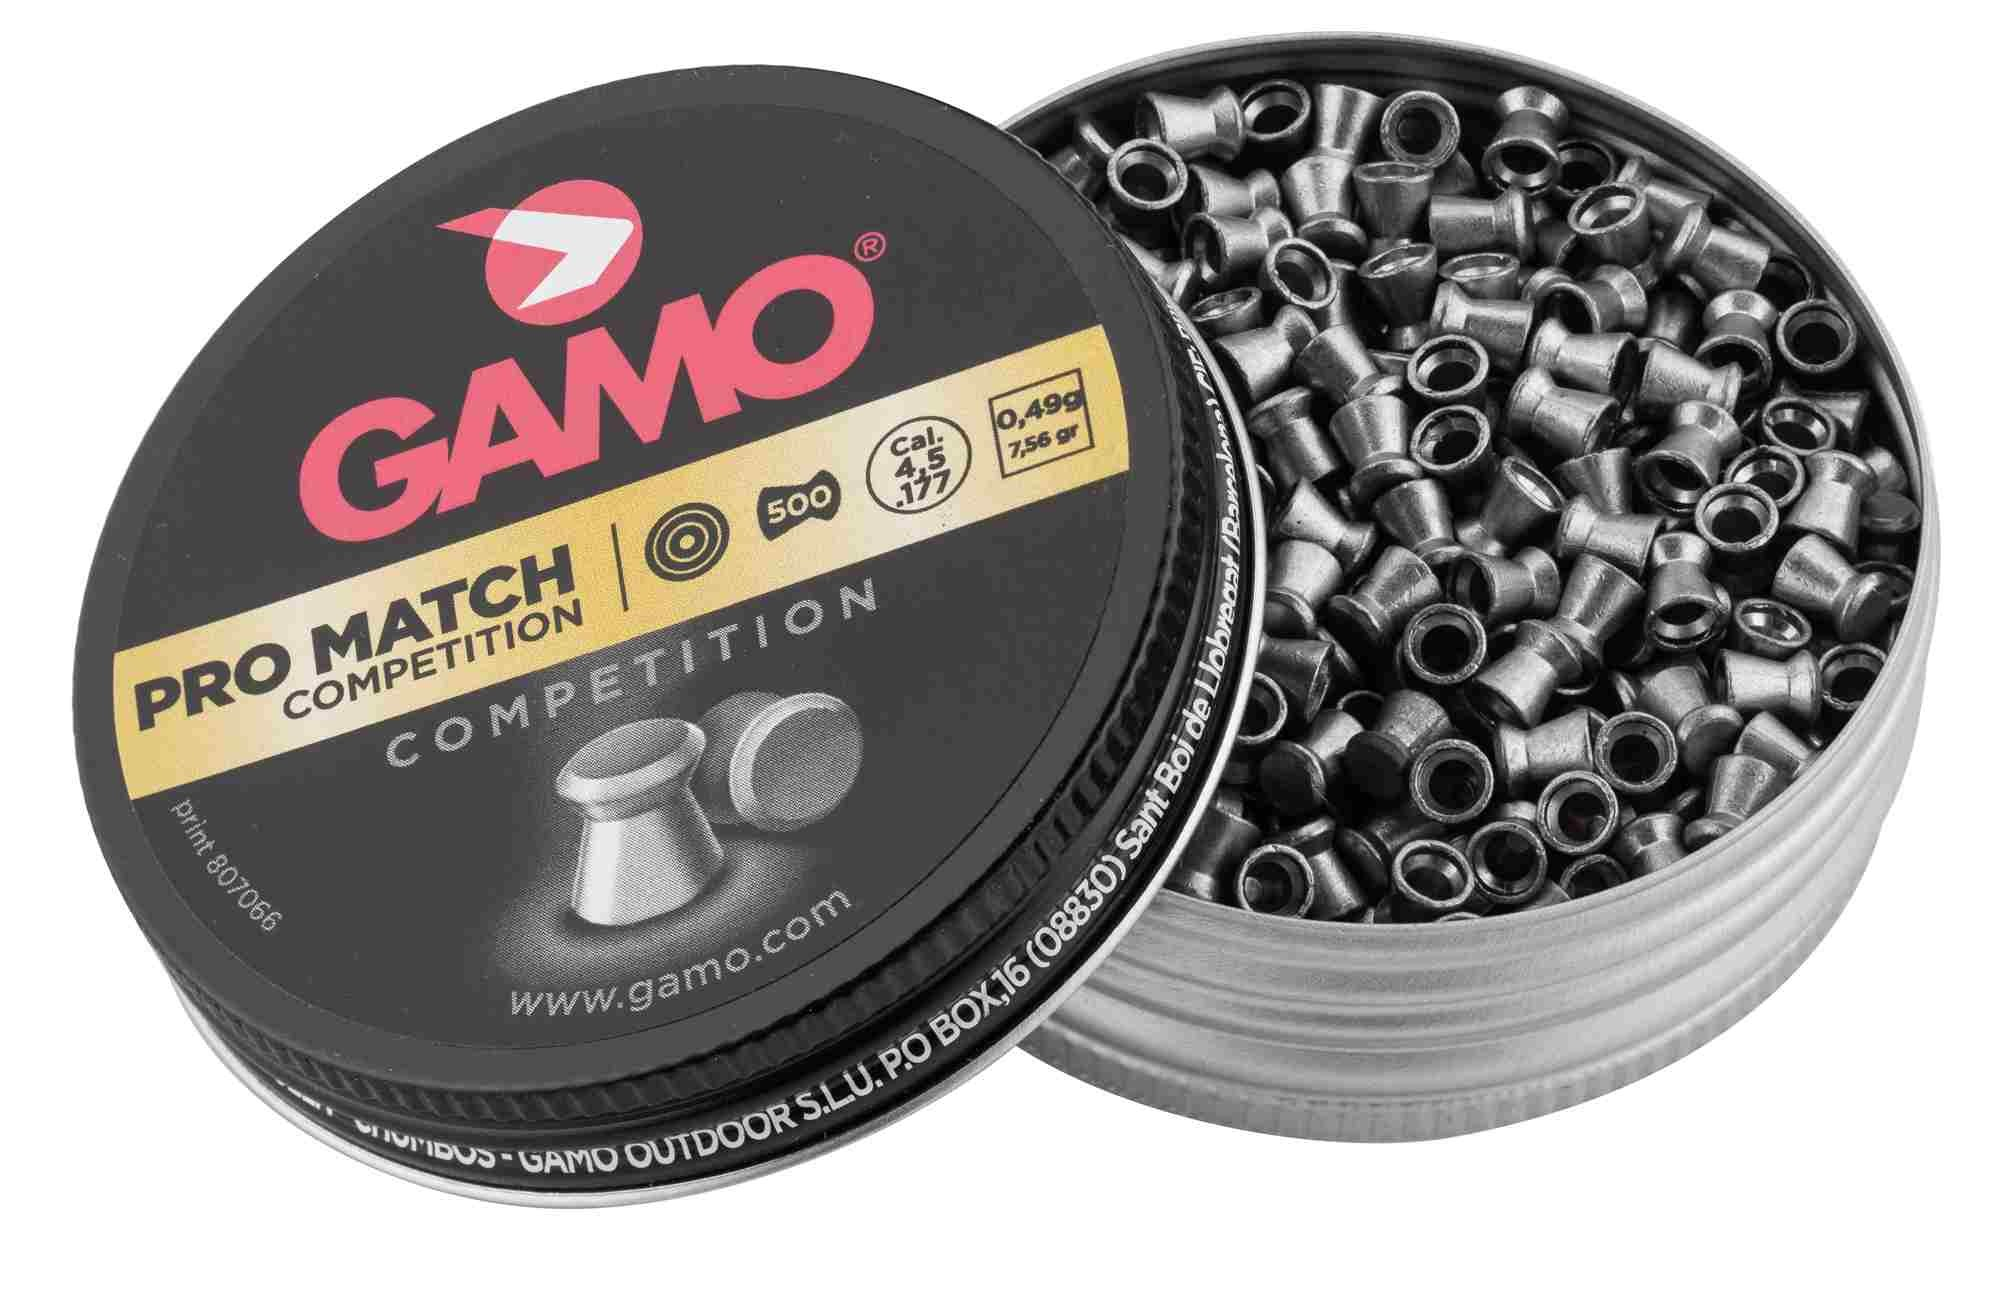 G3150-1 Plombs PRO MATCH COMPETITION 4,5 mm - GAMO - G3150